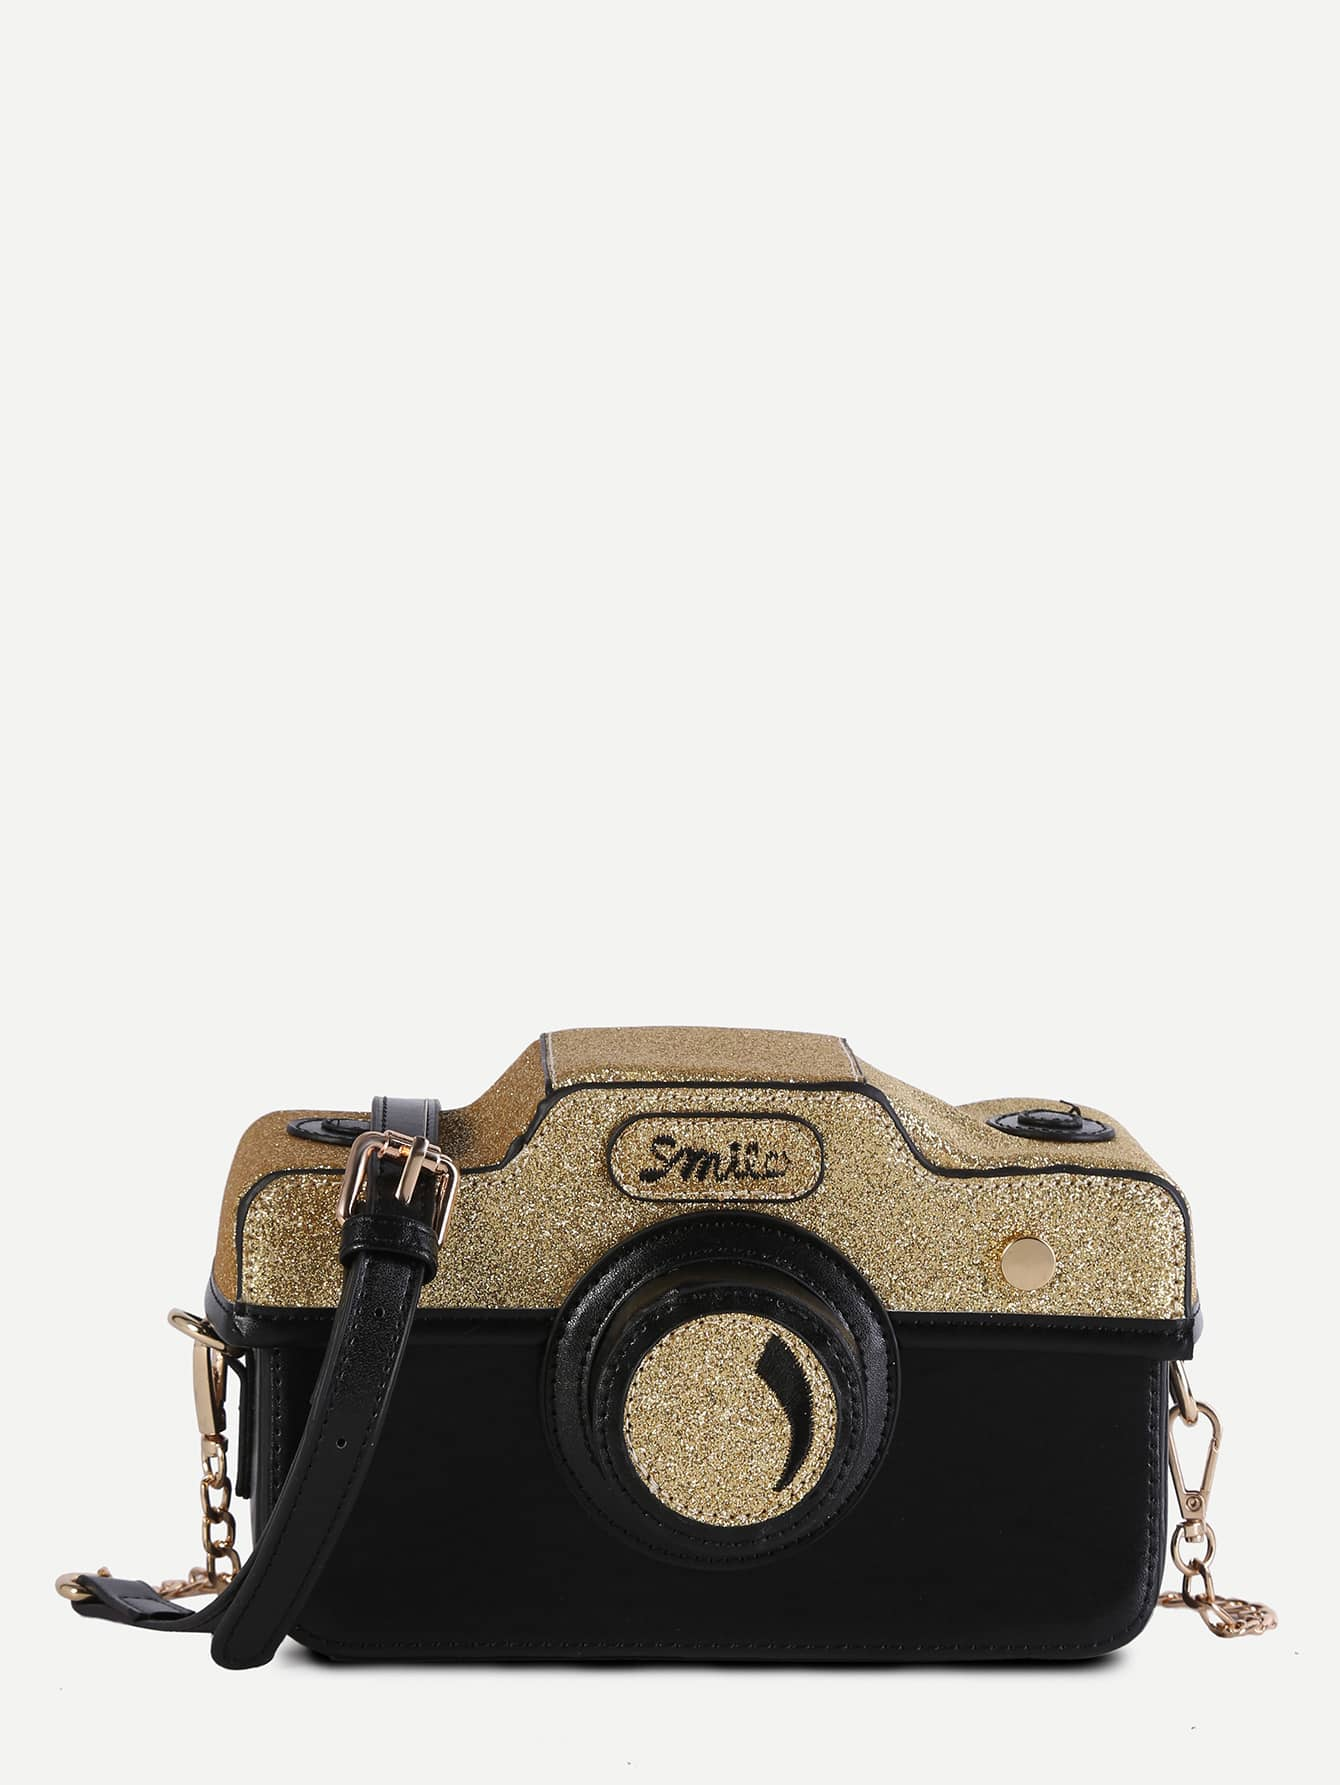 Mini Black Faux Leather Camera Bag With Chain